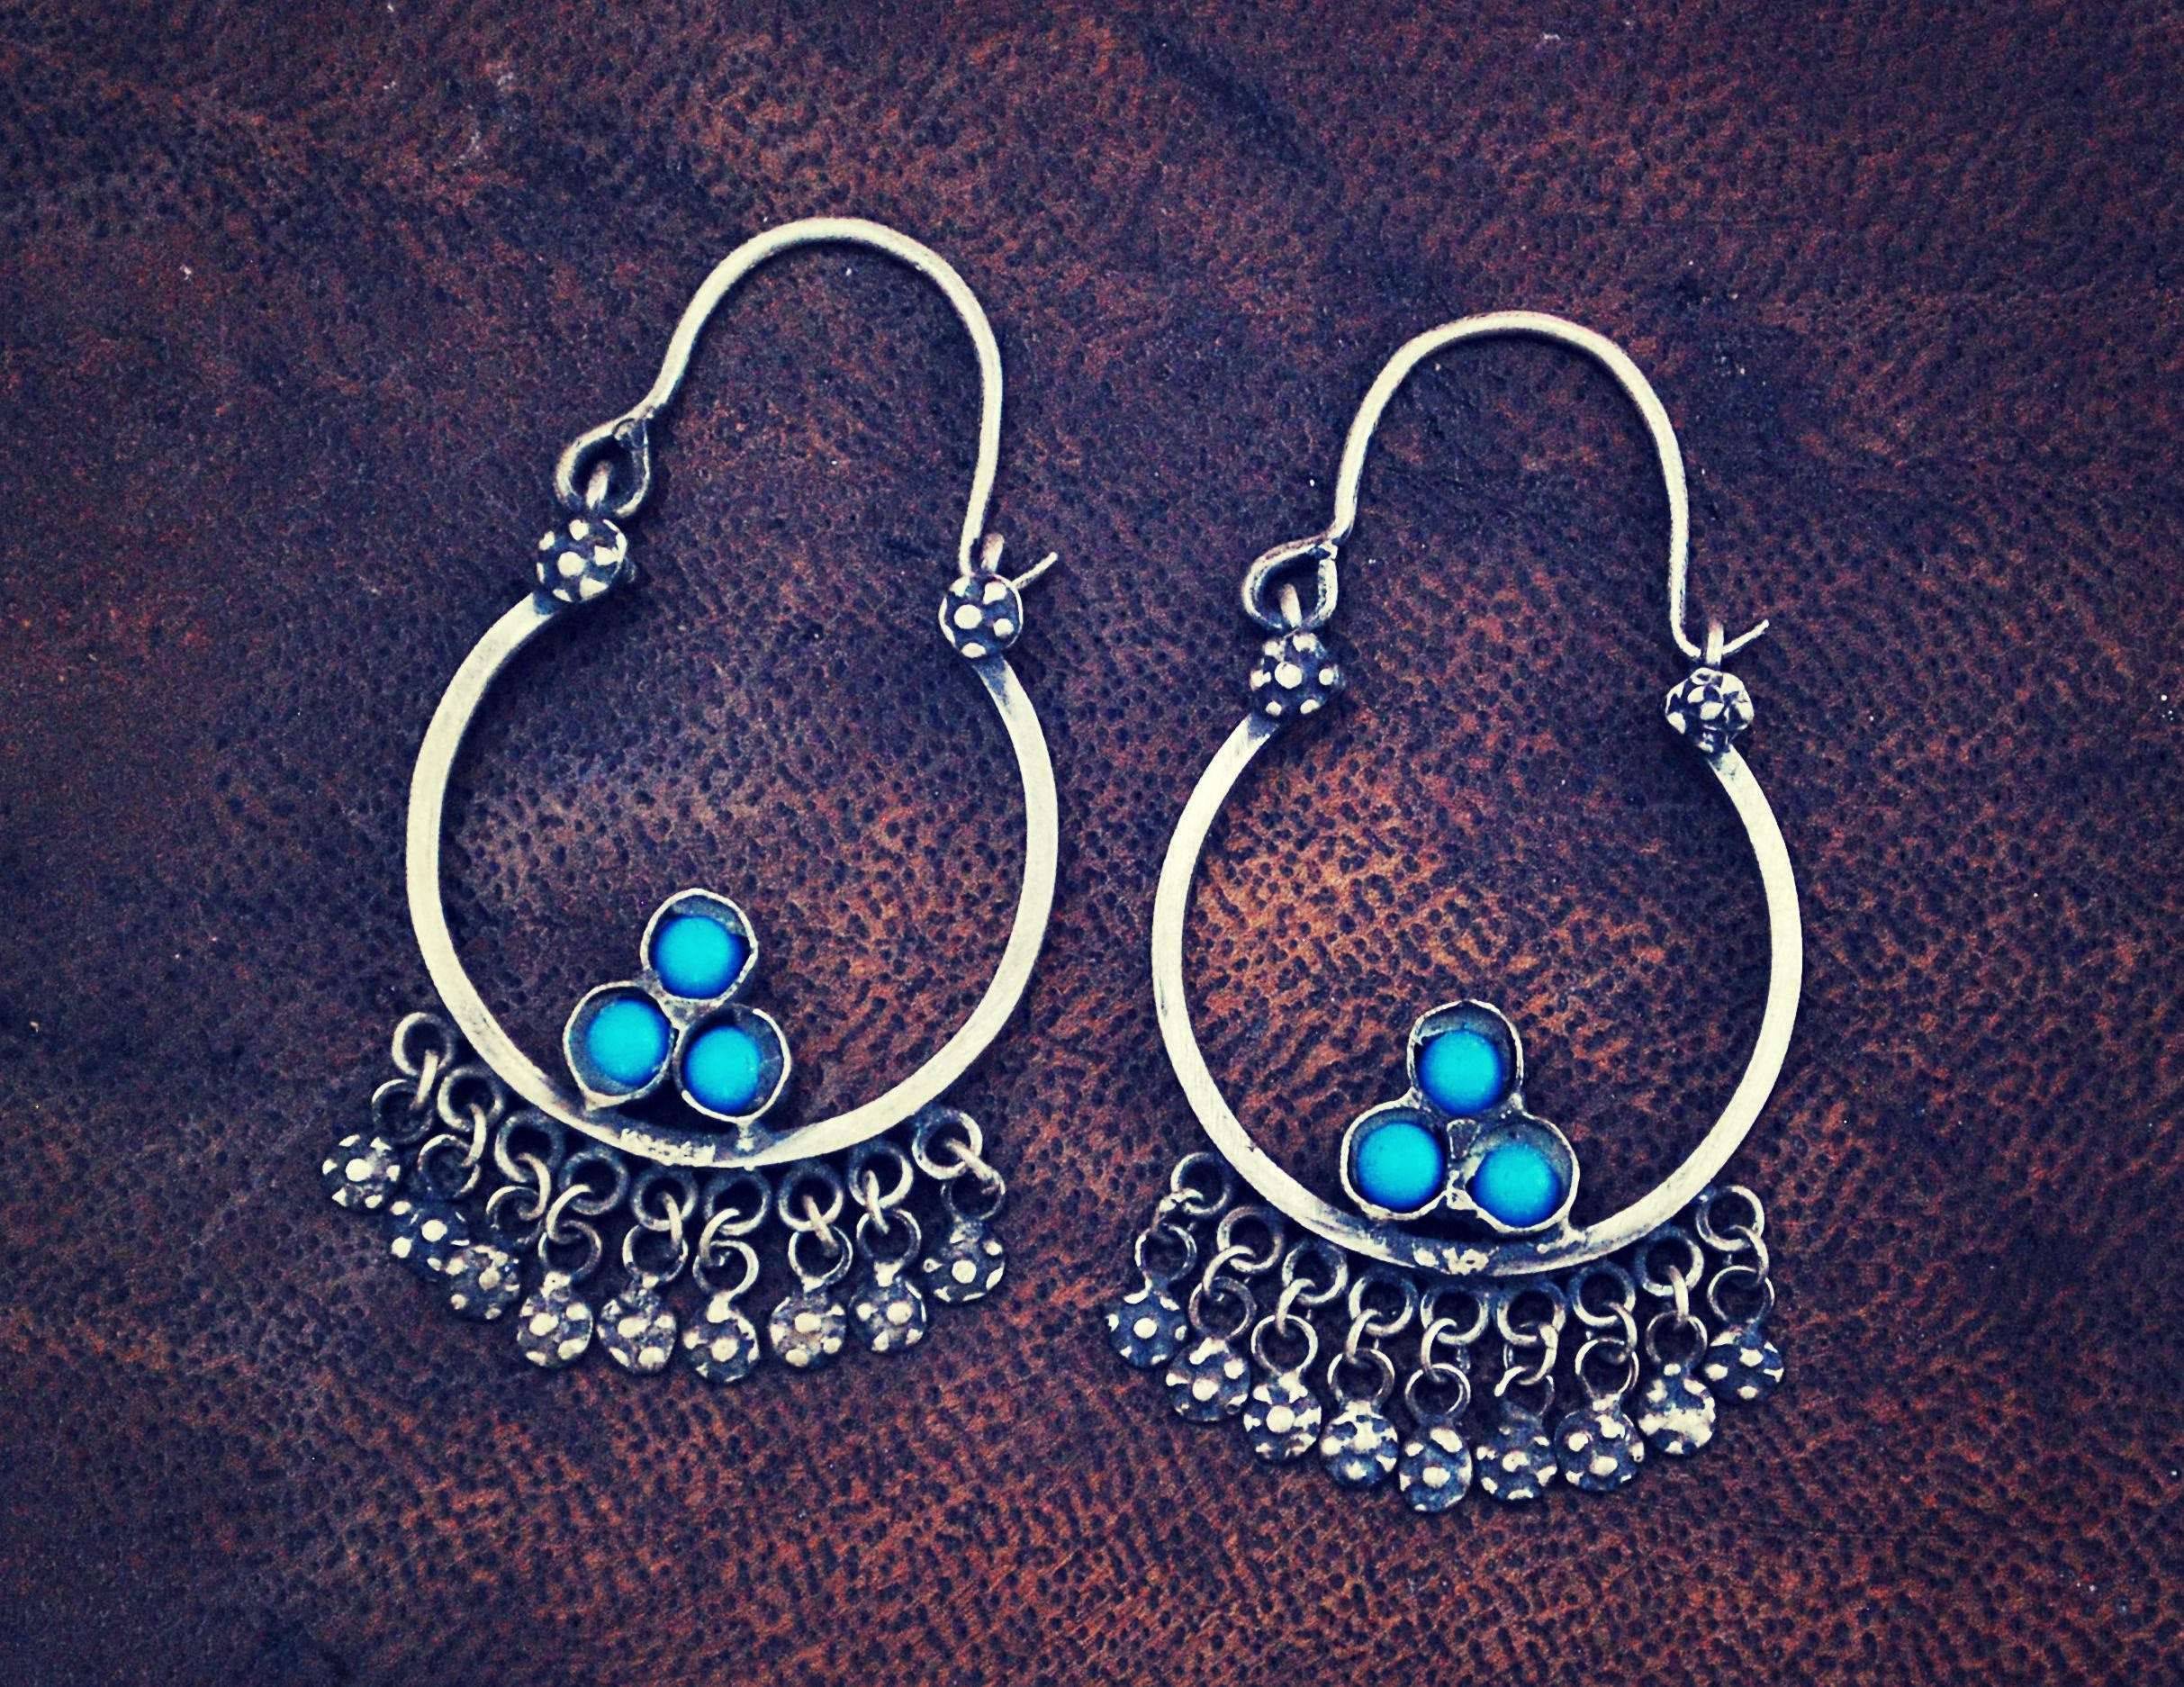 Antique Afghani Tribal Hoop Earrings - Tribal Hoop Earrings - Afghani Earrings - Ethnic Hoop Earrings - Afghani Jewelry